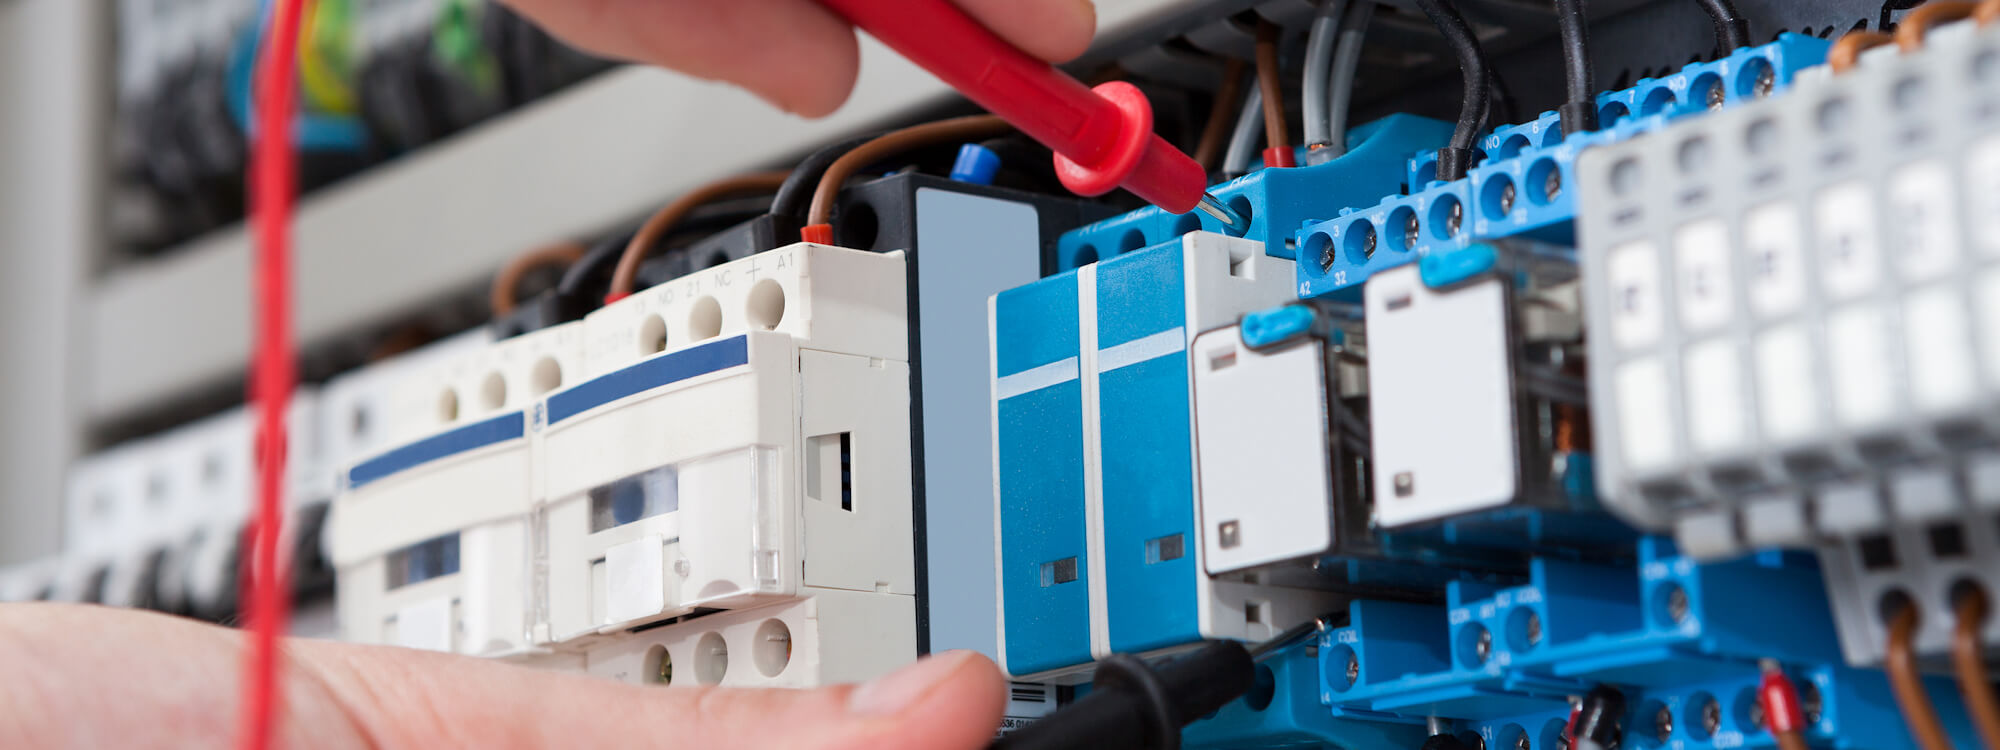 Control Panel Wiring Jobs West Midlands - Free Car Wiring Diagrams •